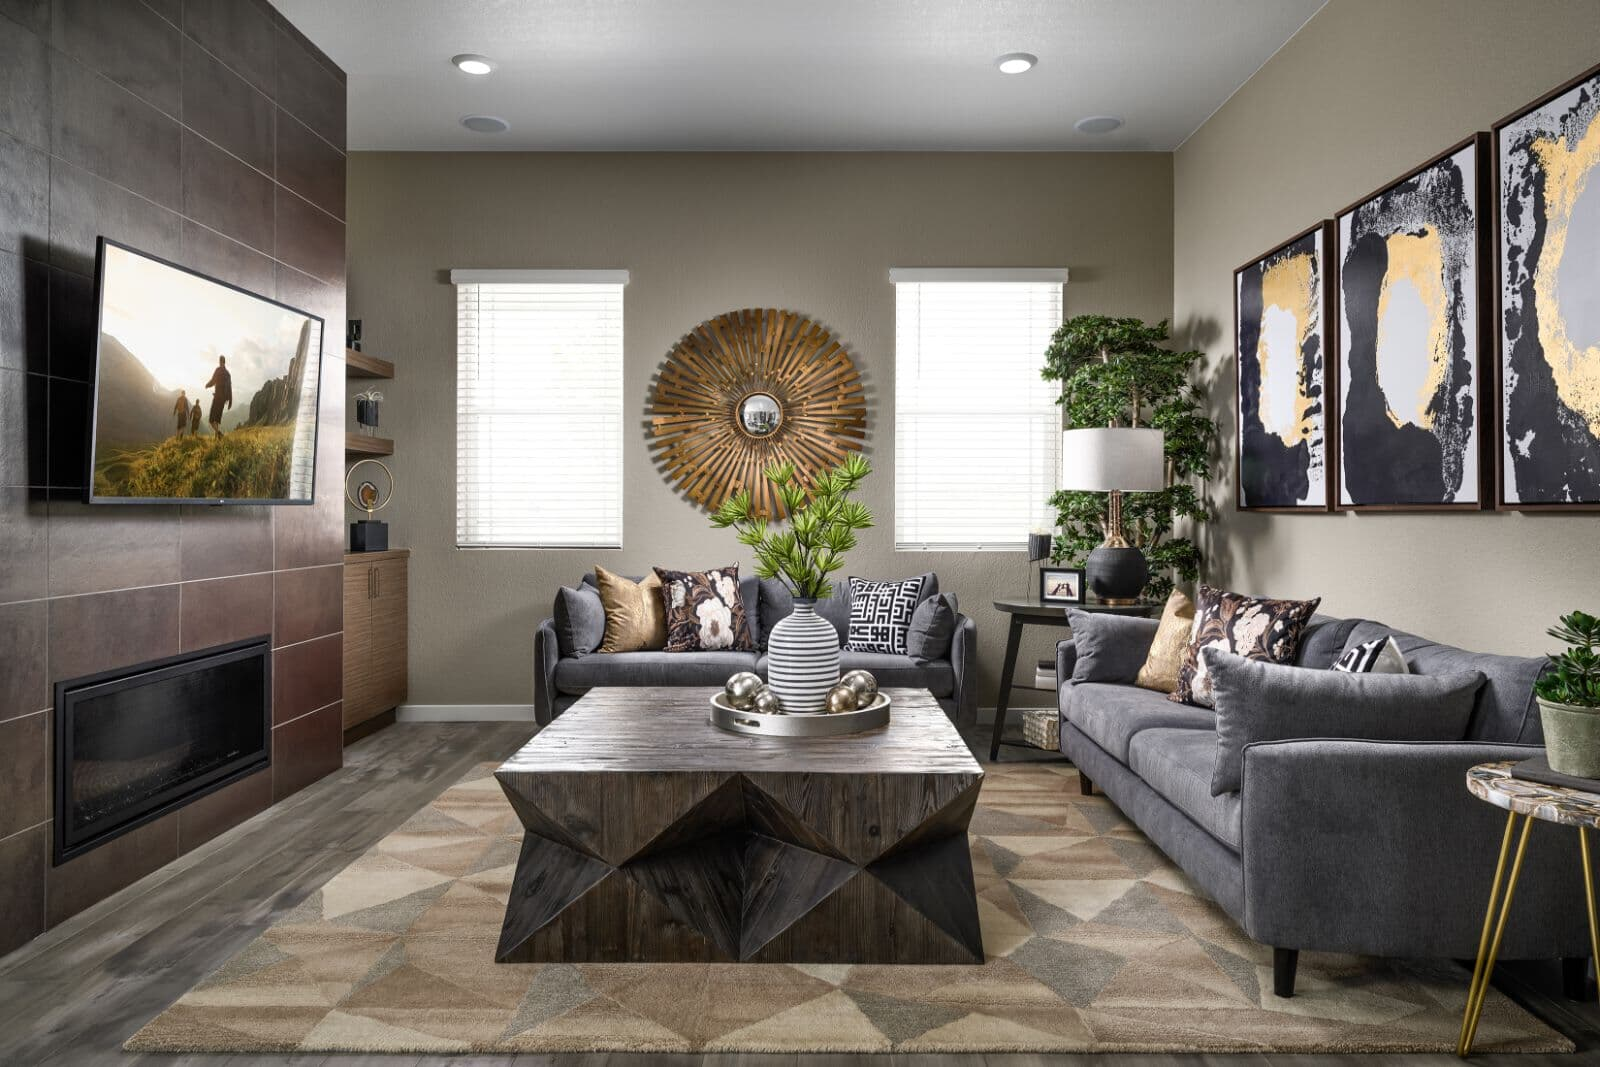 Villa-Two-Family-Room-Barefoot-lakes-Denver-Colorado